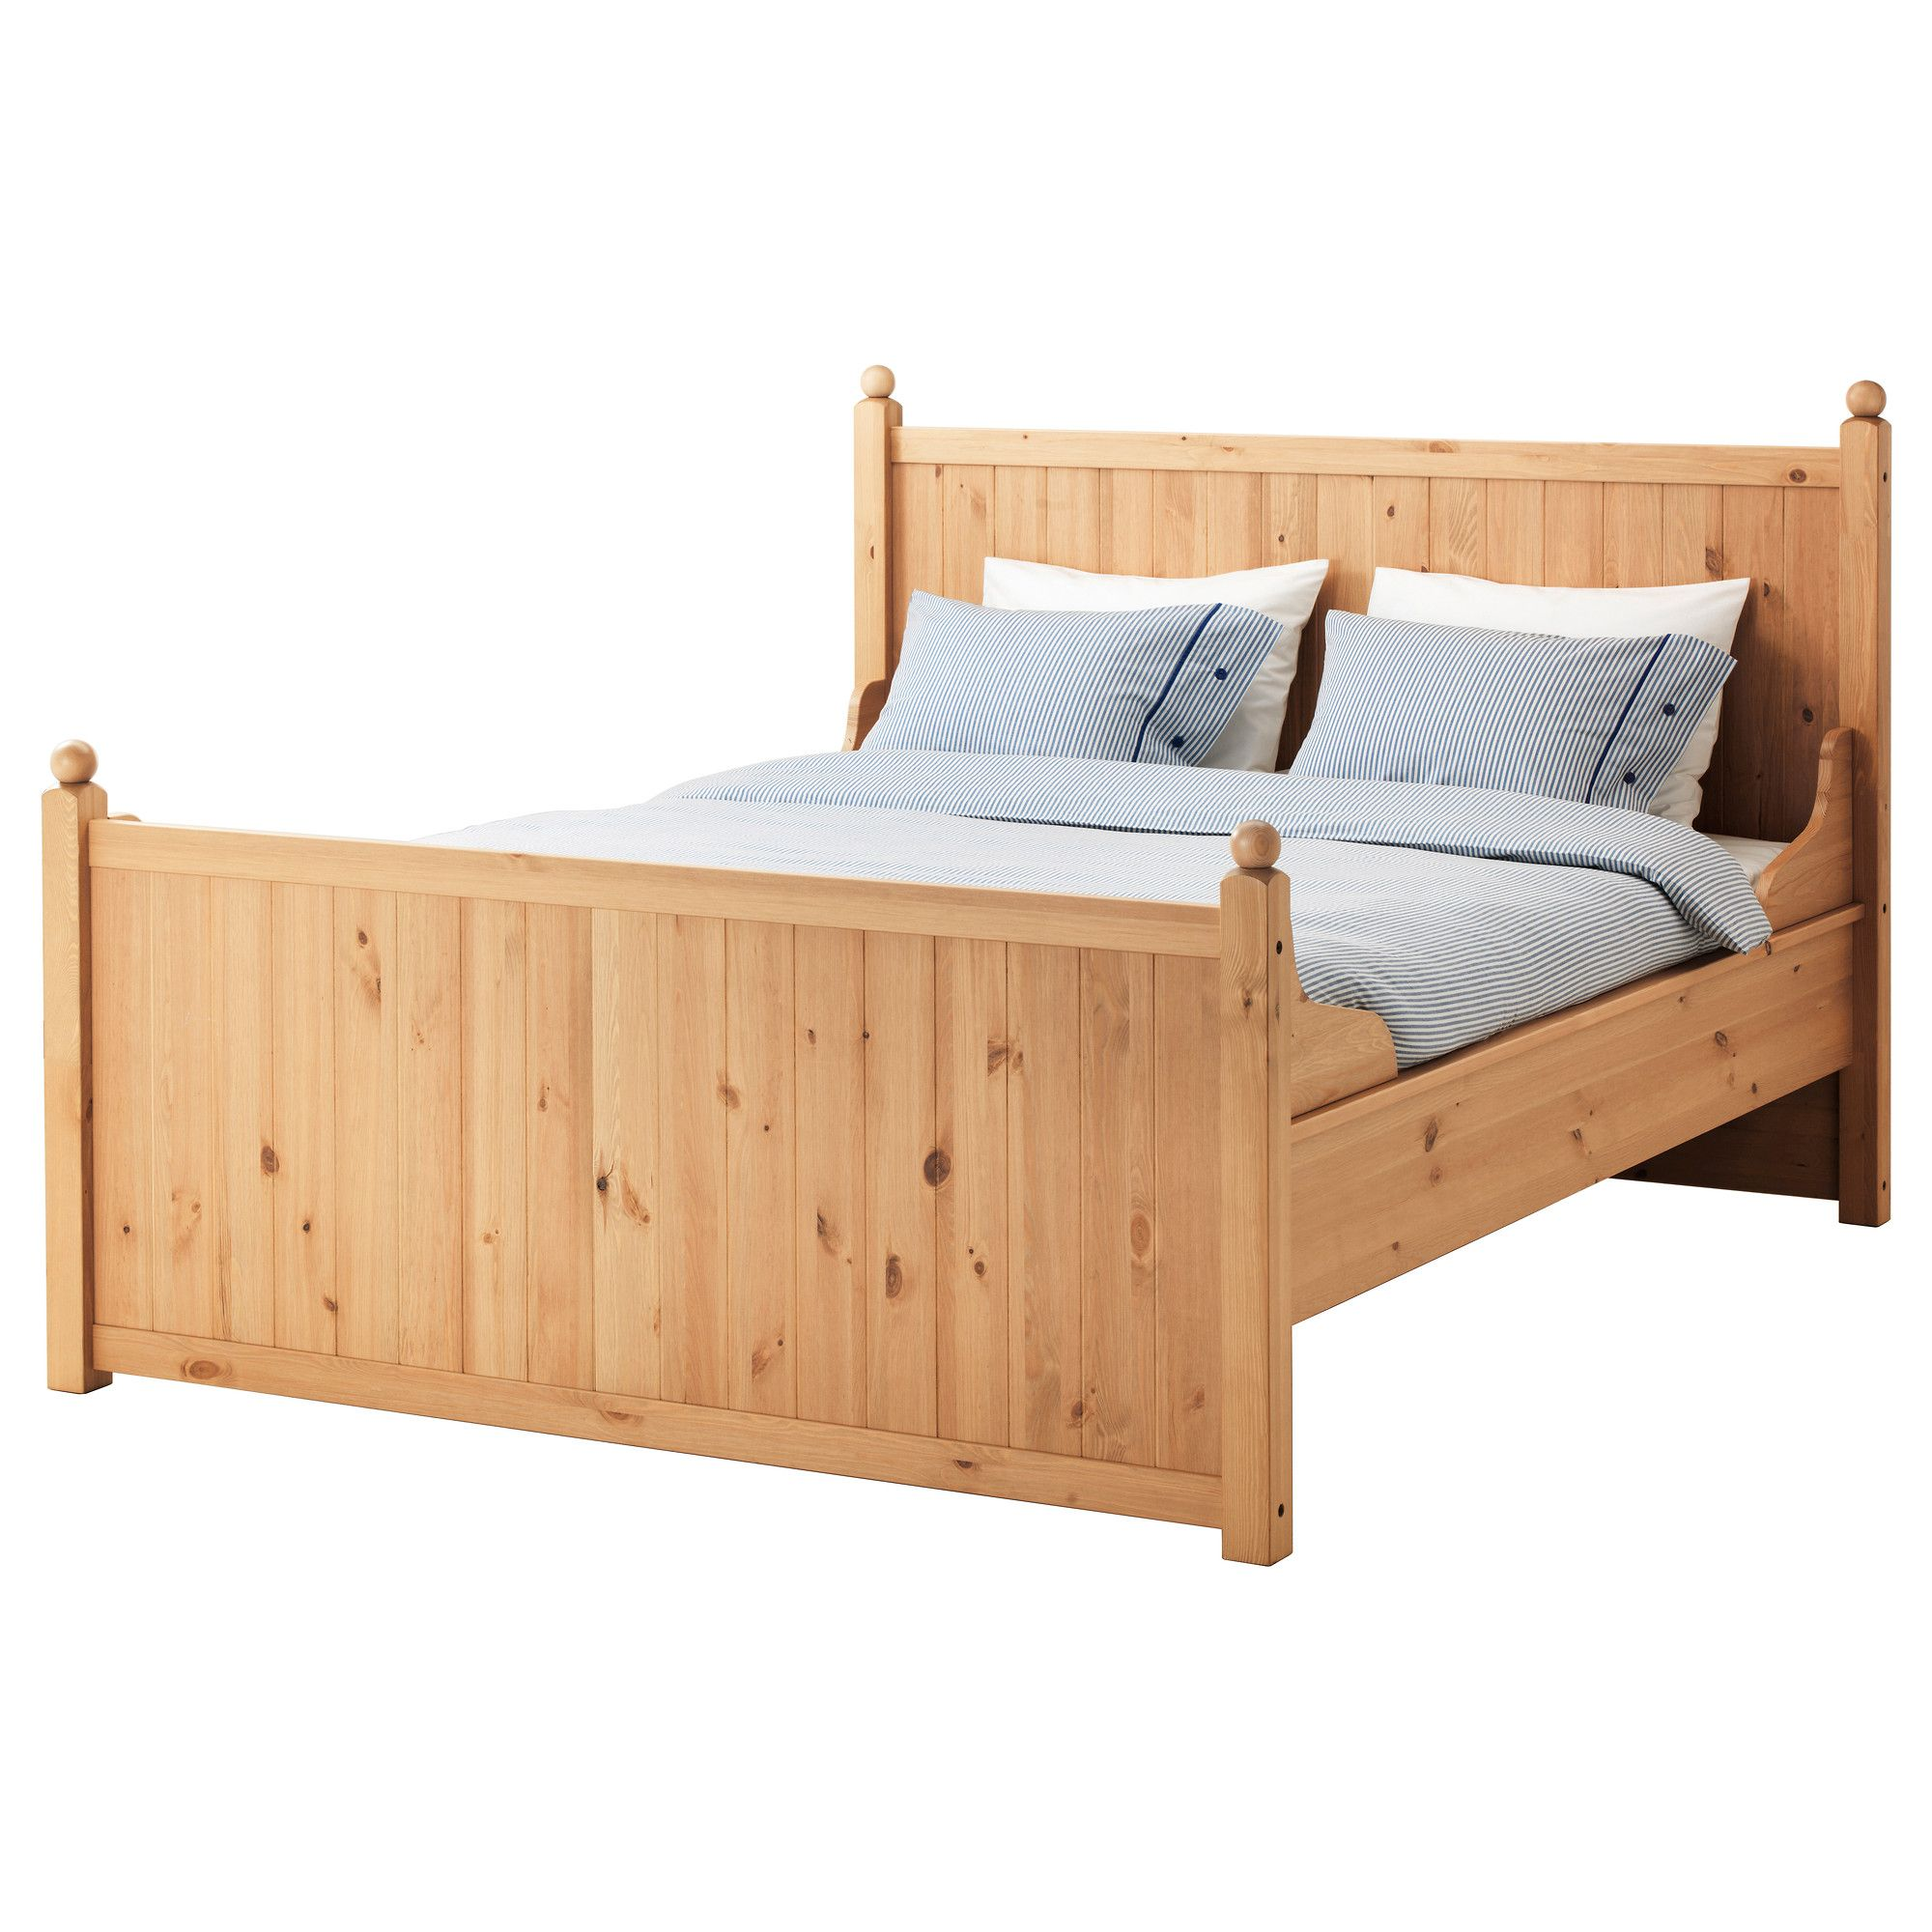 Us Furniture And Home Furnishings Ikea Bed Bed Frame Ikea Finds